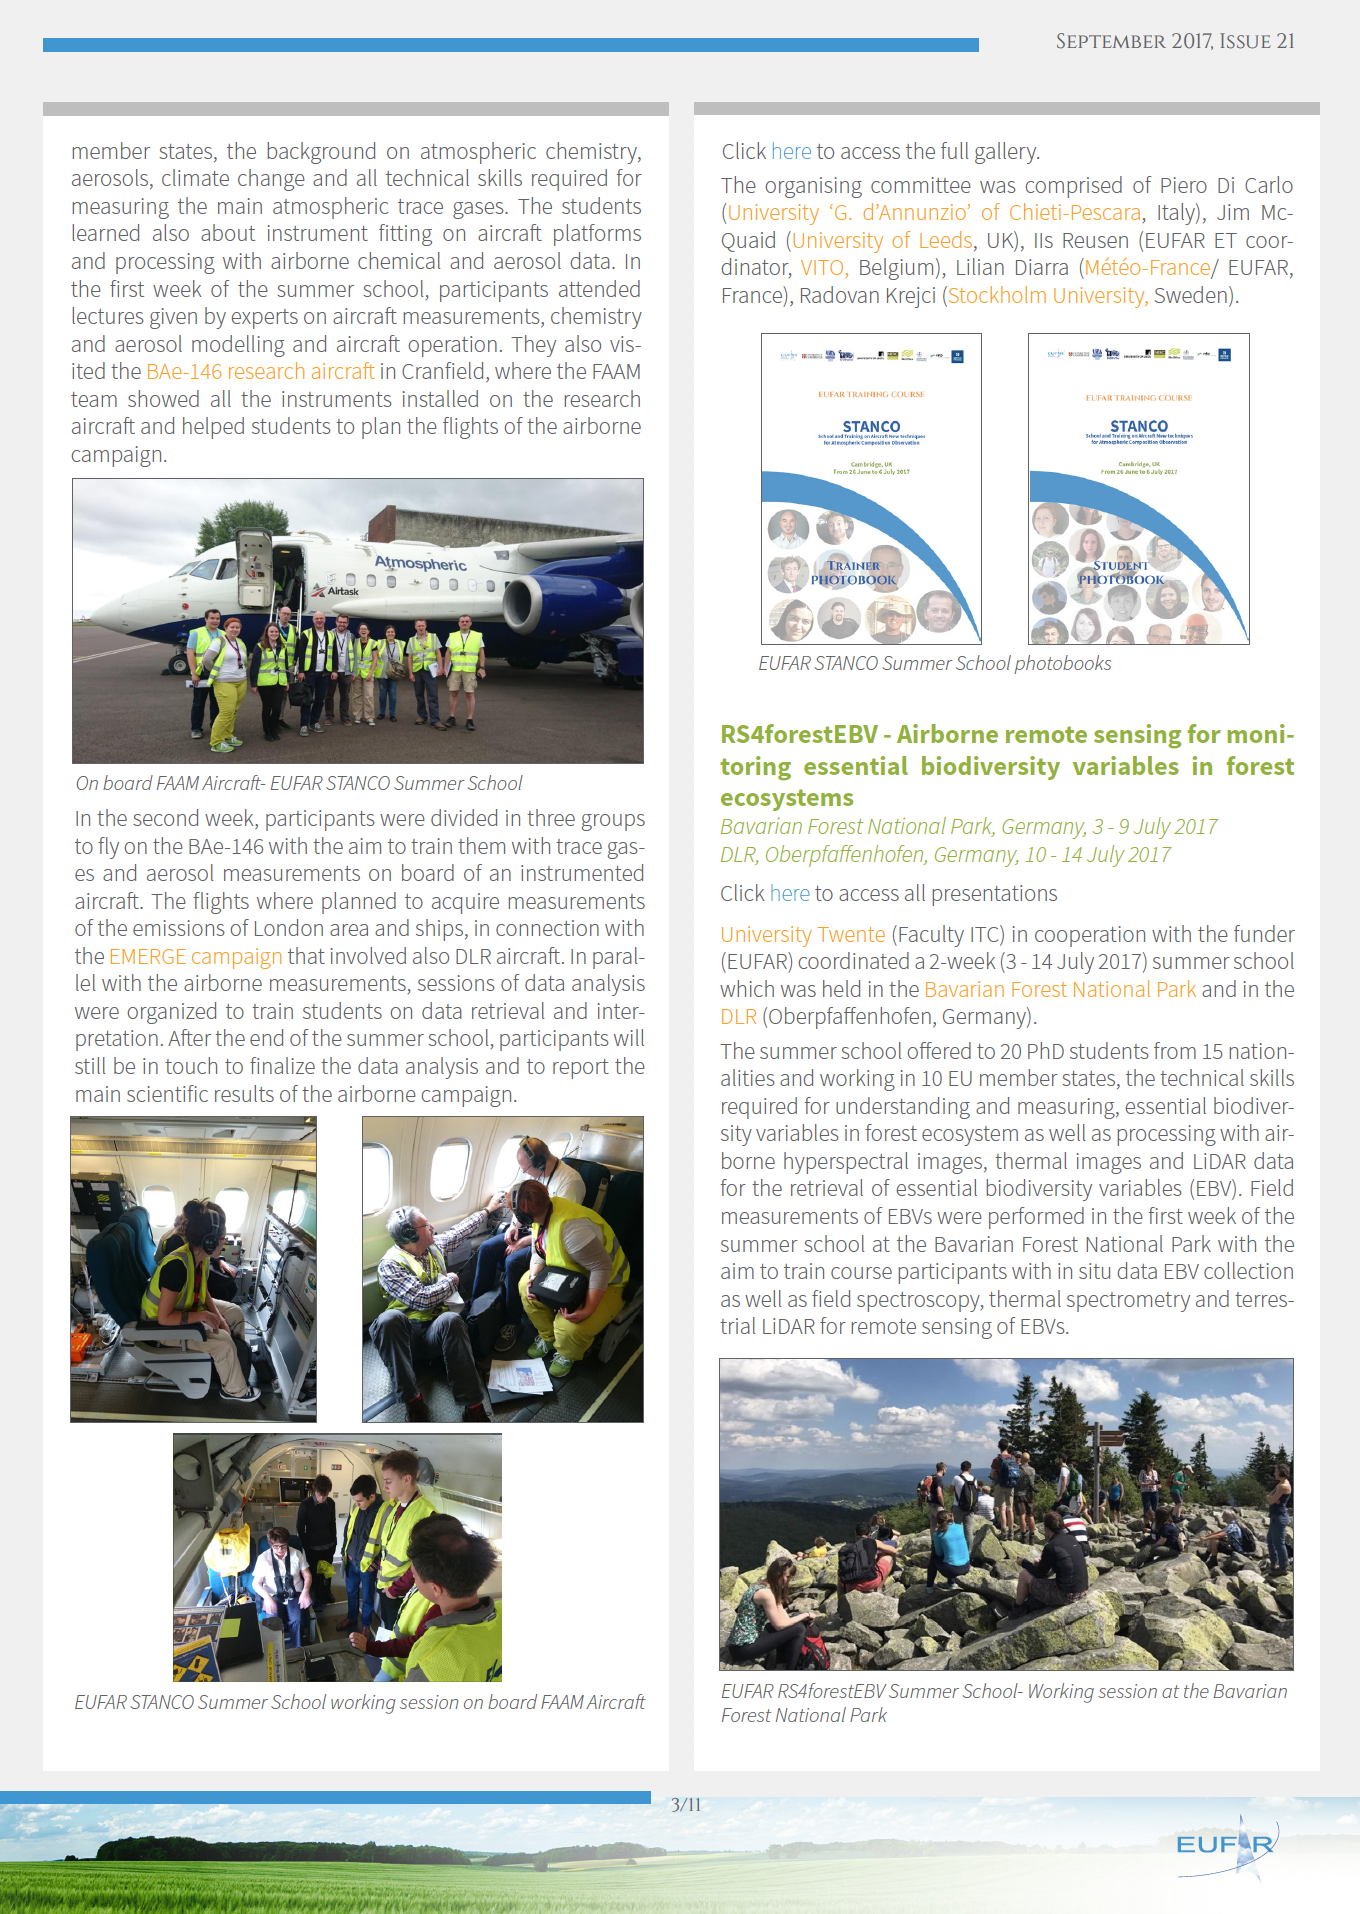 EUFAR- European Facility for Airborne Research – Shakers Makers